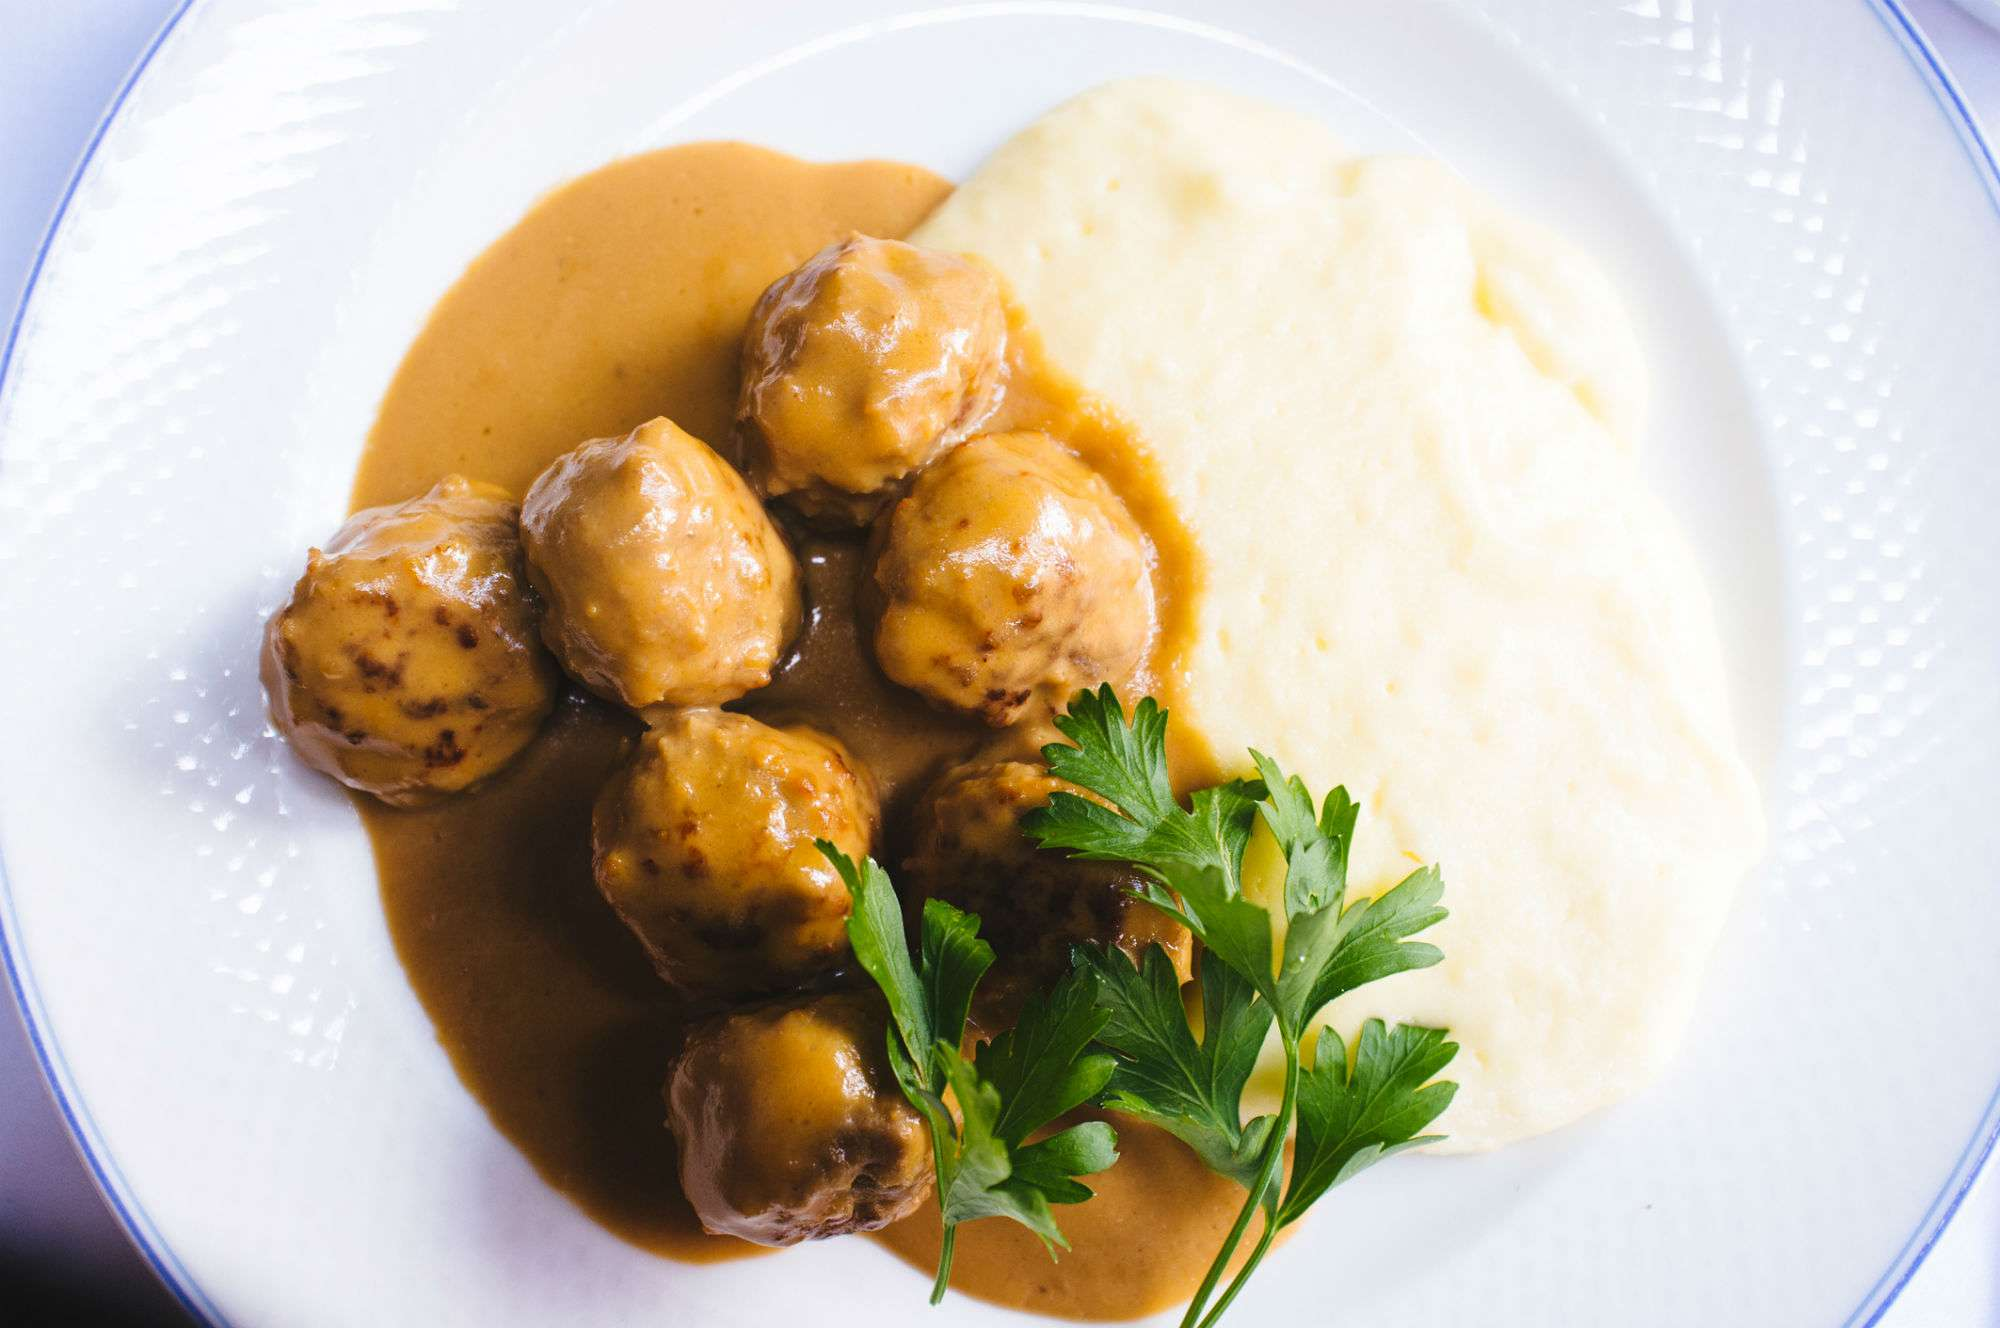 Traditional Sweden meatball.